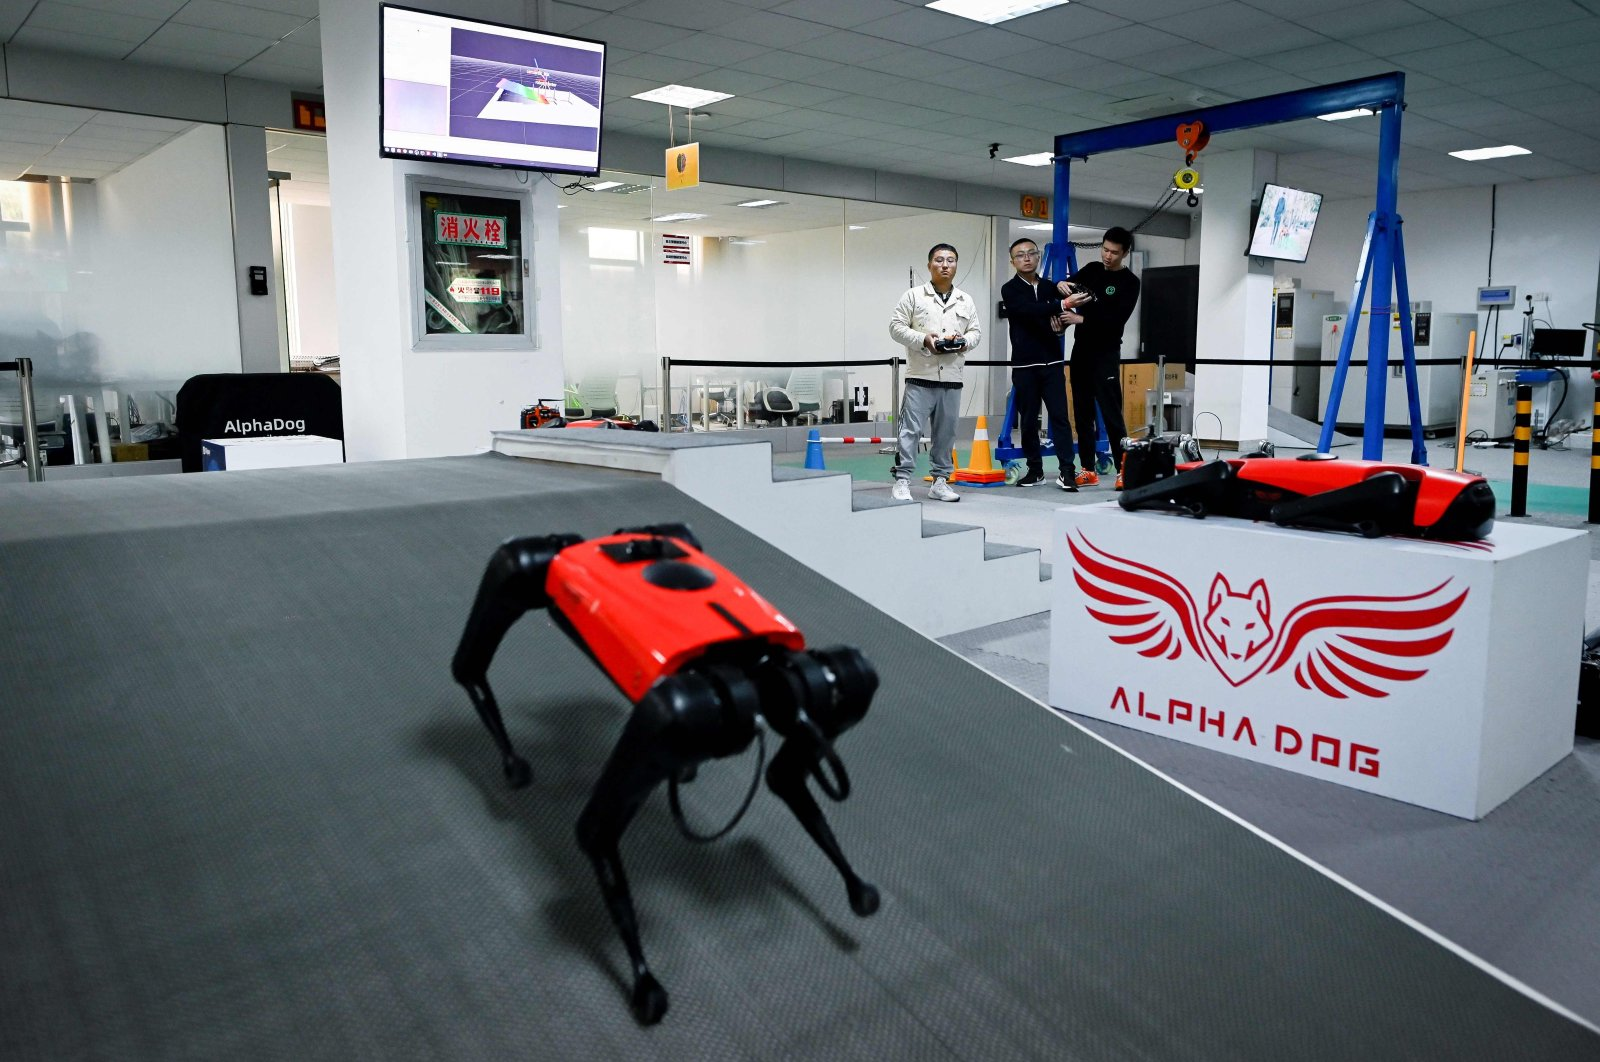 An engineer (background R) controlling an AlphaDog quadruped robot in a workshop at the Weilan Intelligent Technology Corporation in Nanjing, China's Jiangsu province, April 2, 2021. (AFP Photo)